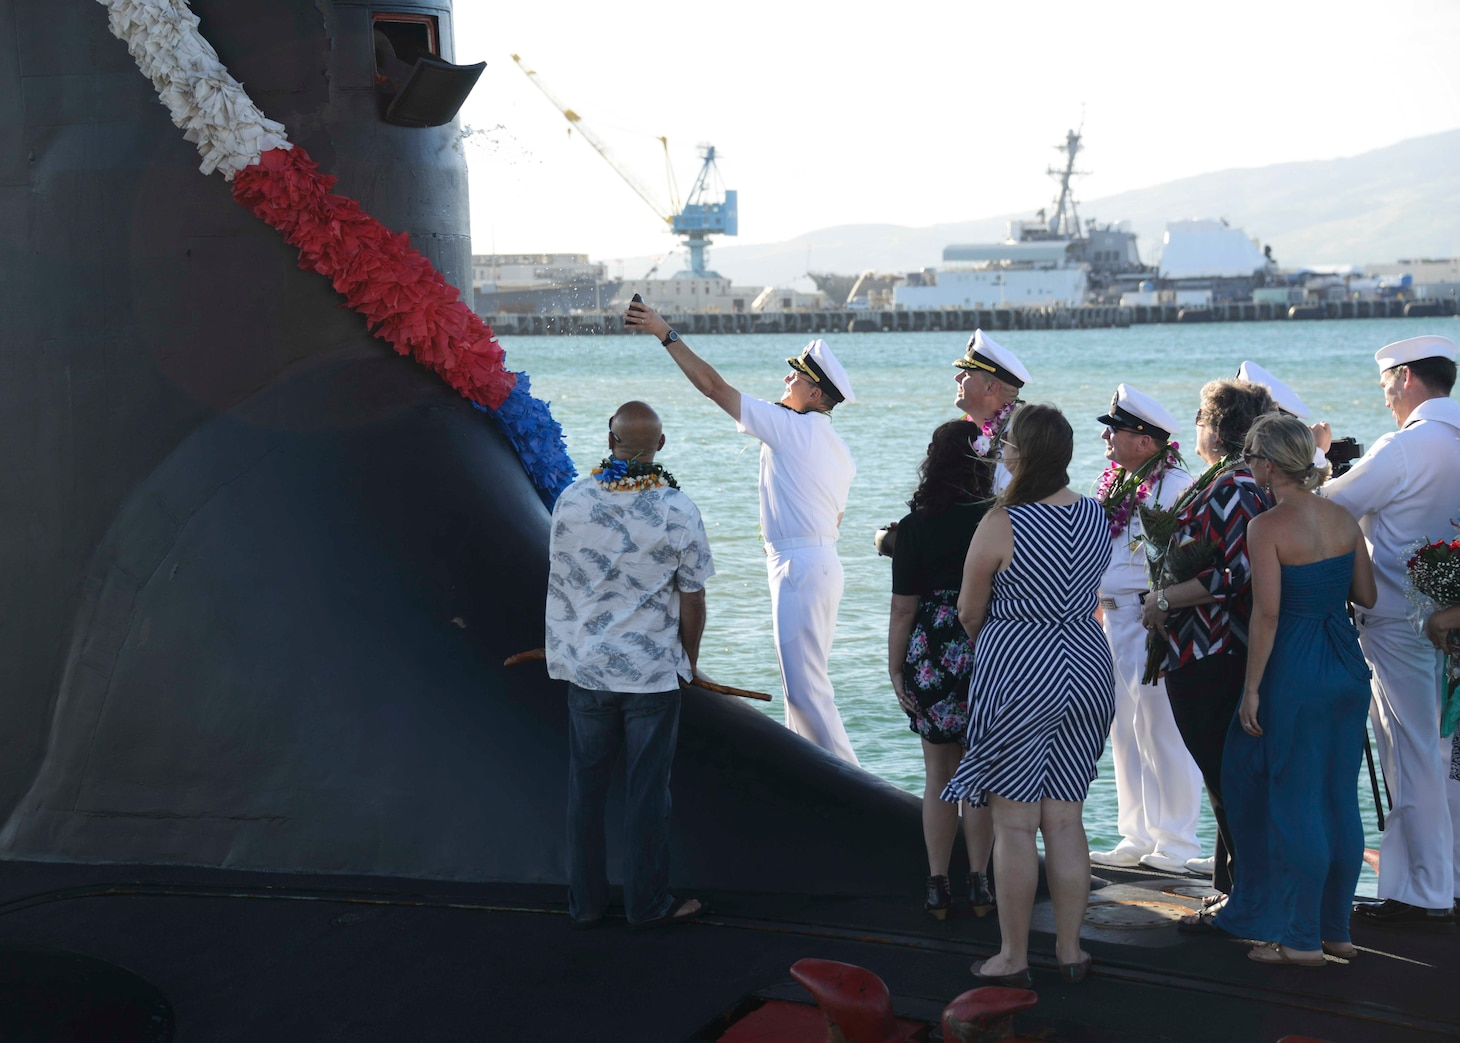 141125-N-DB801-373 PEARL HARBOR, Hawaii (Nov. 25, 2014) Capt. Harry Ganteaume, commodore of Submarine Squadron (SUBRON) 1, participates in a traditional Hawaiian blessing ceremony of the Virginia-class attack submarine USS Mississippi (SSN 782) upon the ship's arrival at Joint Base Pearl Harbor-Hickam. Mississippi is changing homeport from Commander, Submarine Squadron 4 in Groton, Conn. to Commander, Submarine Squadron 1. Mississippi makes is the 4th Virginia-class submarine to be home ported in Pearl Harbor, and one of 18 attack submarines permanently homeported at the historic base. (U.S. Navy photo by Mass Communication Specialist 1st Class Steven Khor/Released)